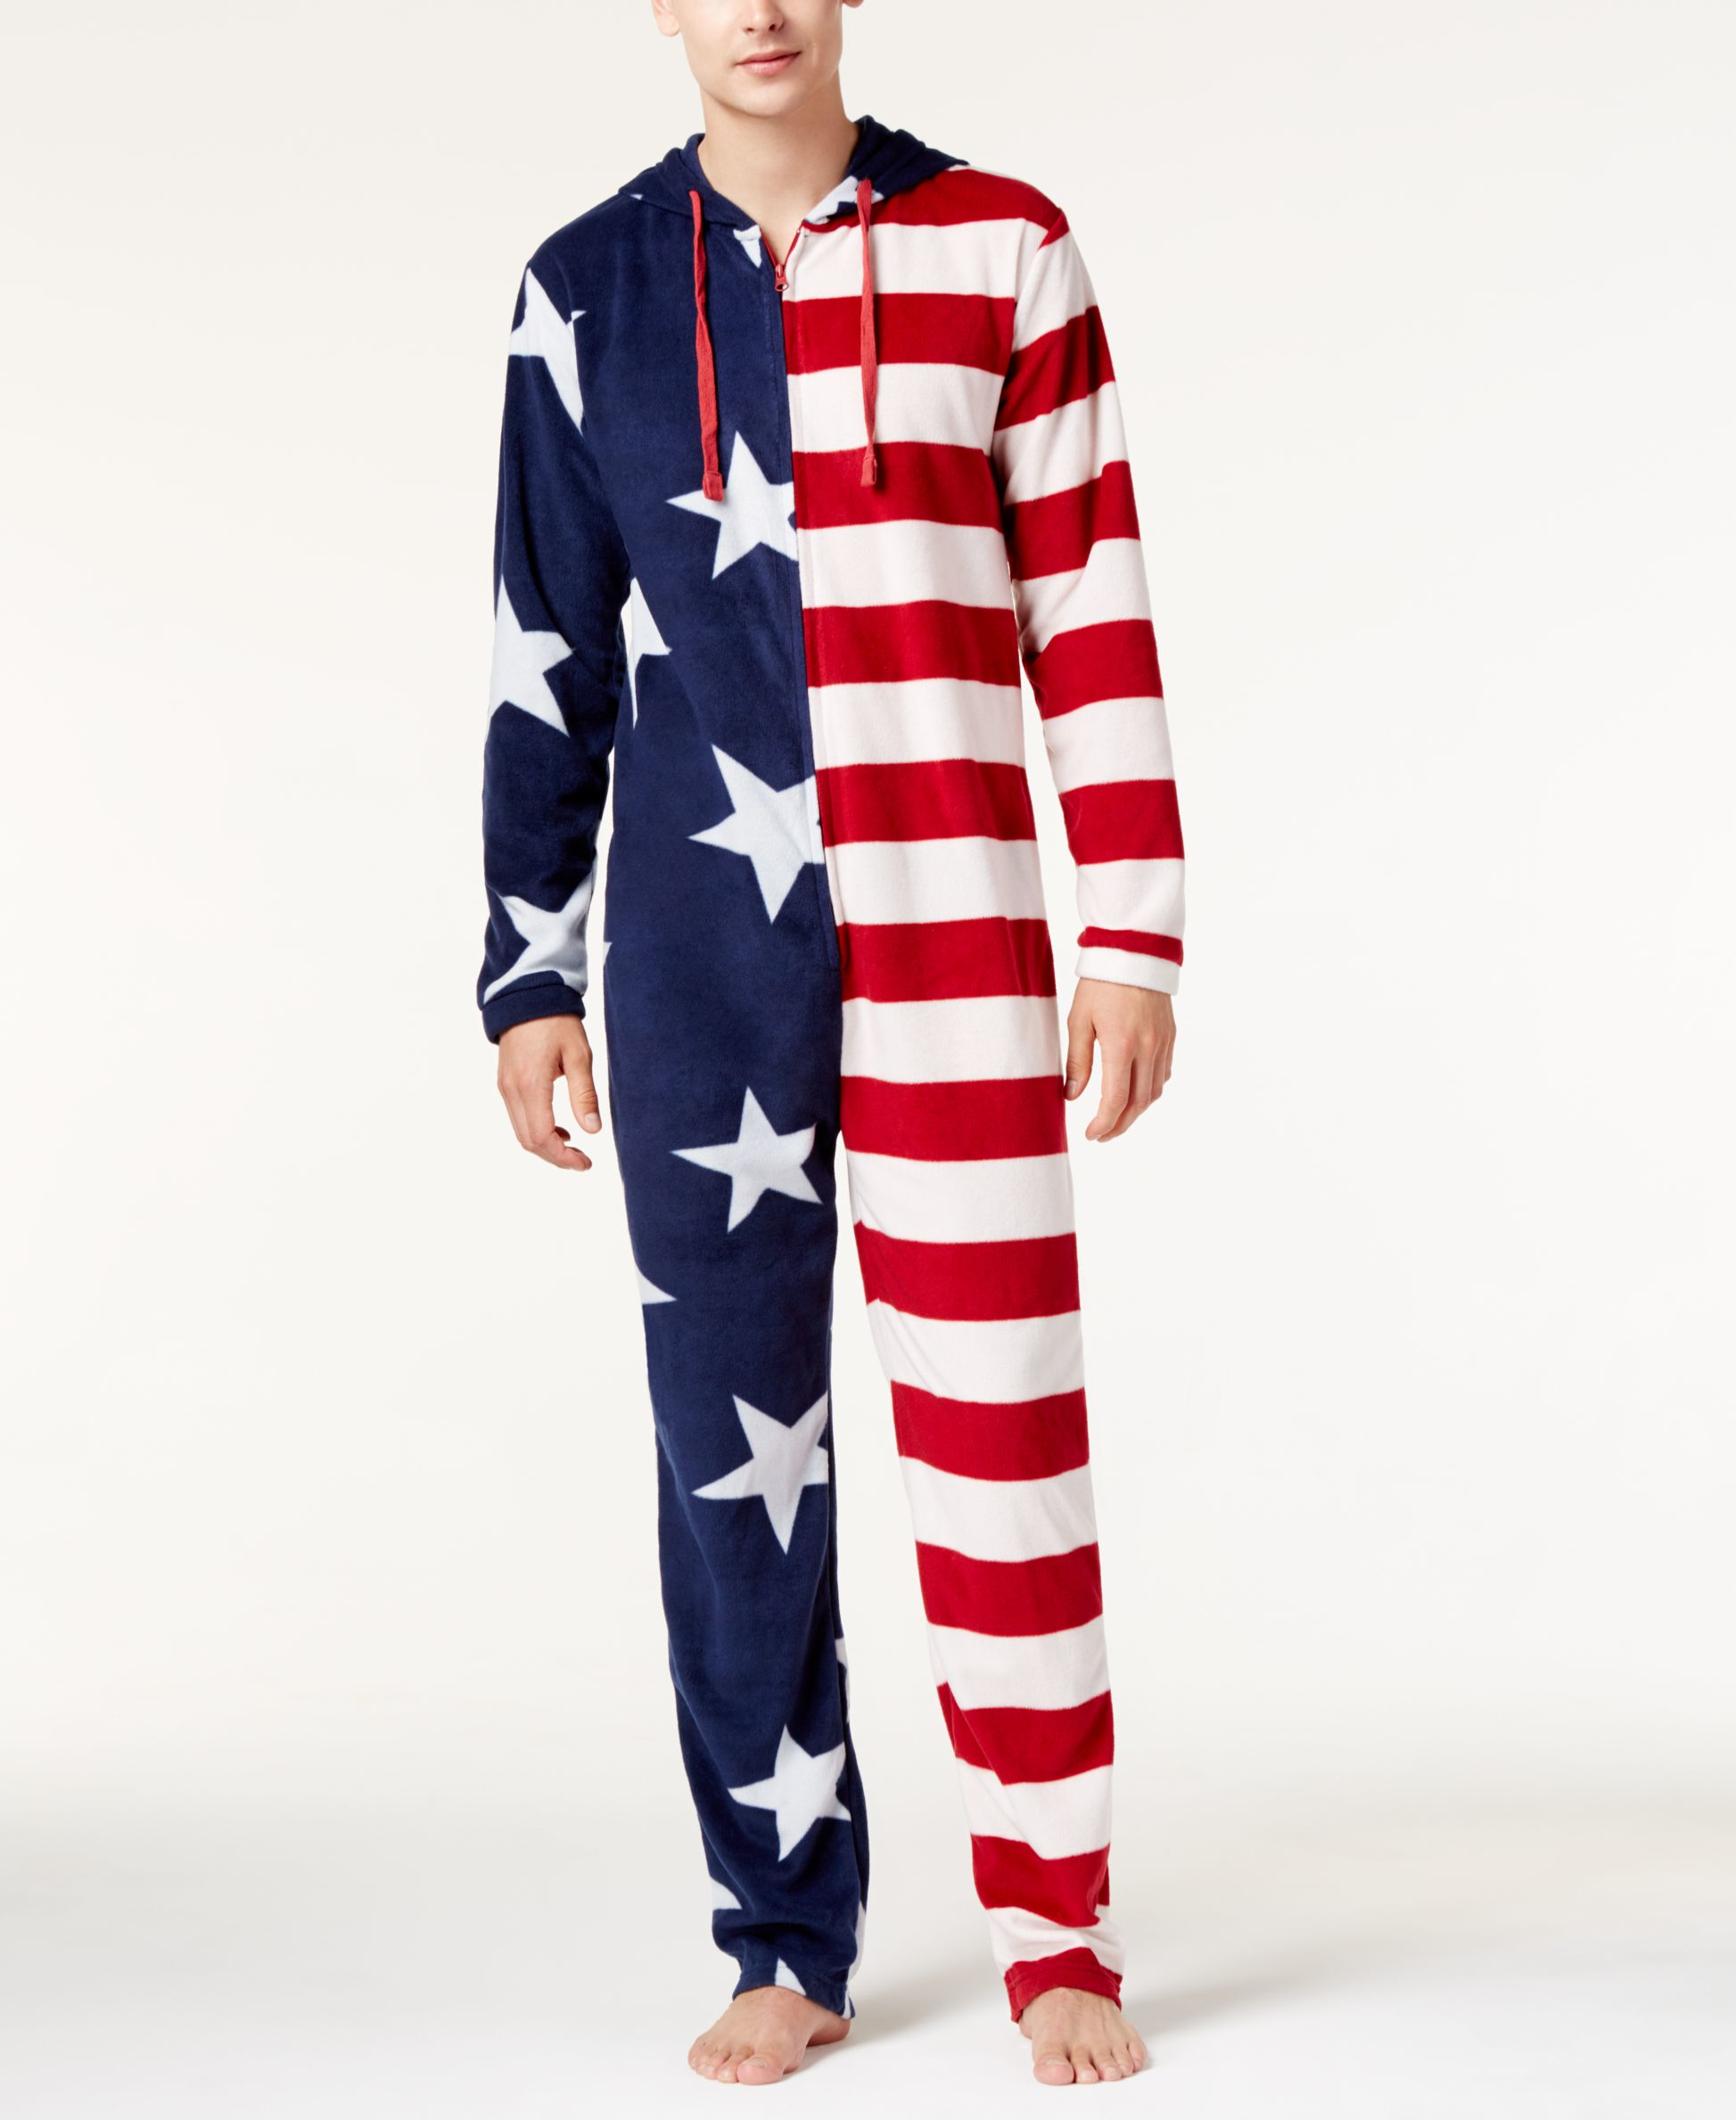 Our American flag clothing is the perfect choice for not just Fourth of July, but all year round. Our selection of patriotic shirts, eagle shirts, American flag board shorts, and Support our Troop Shirts are high quality, patriotic, and stand as a tribute to the country we all love so much.